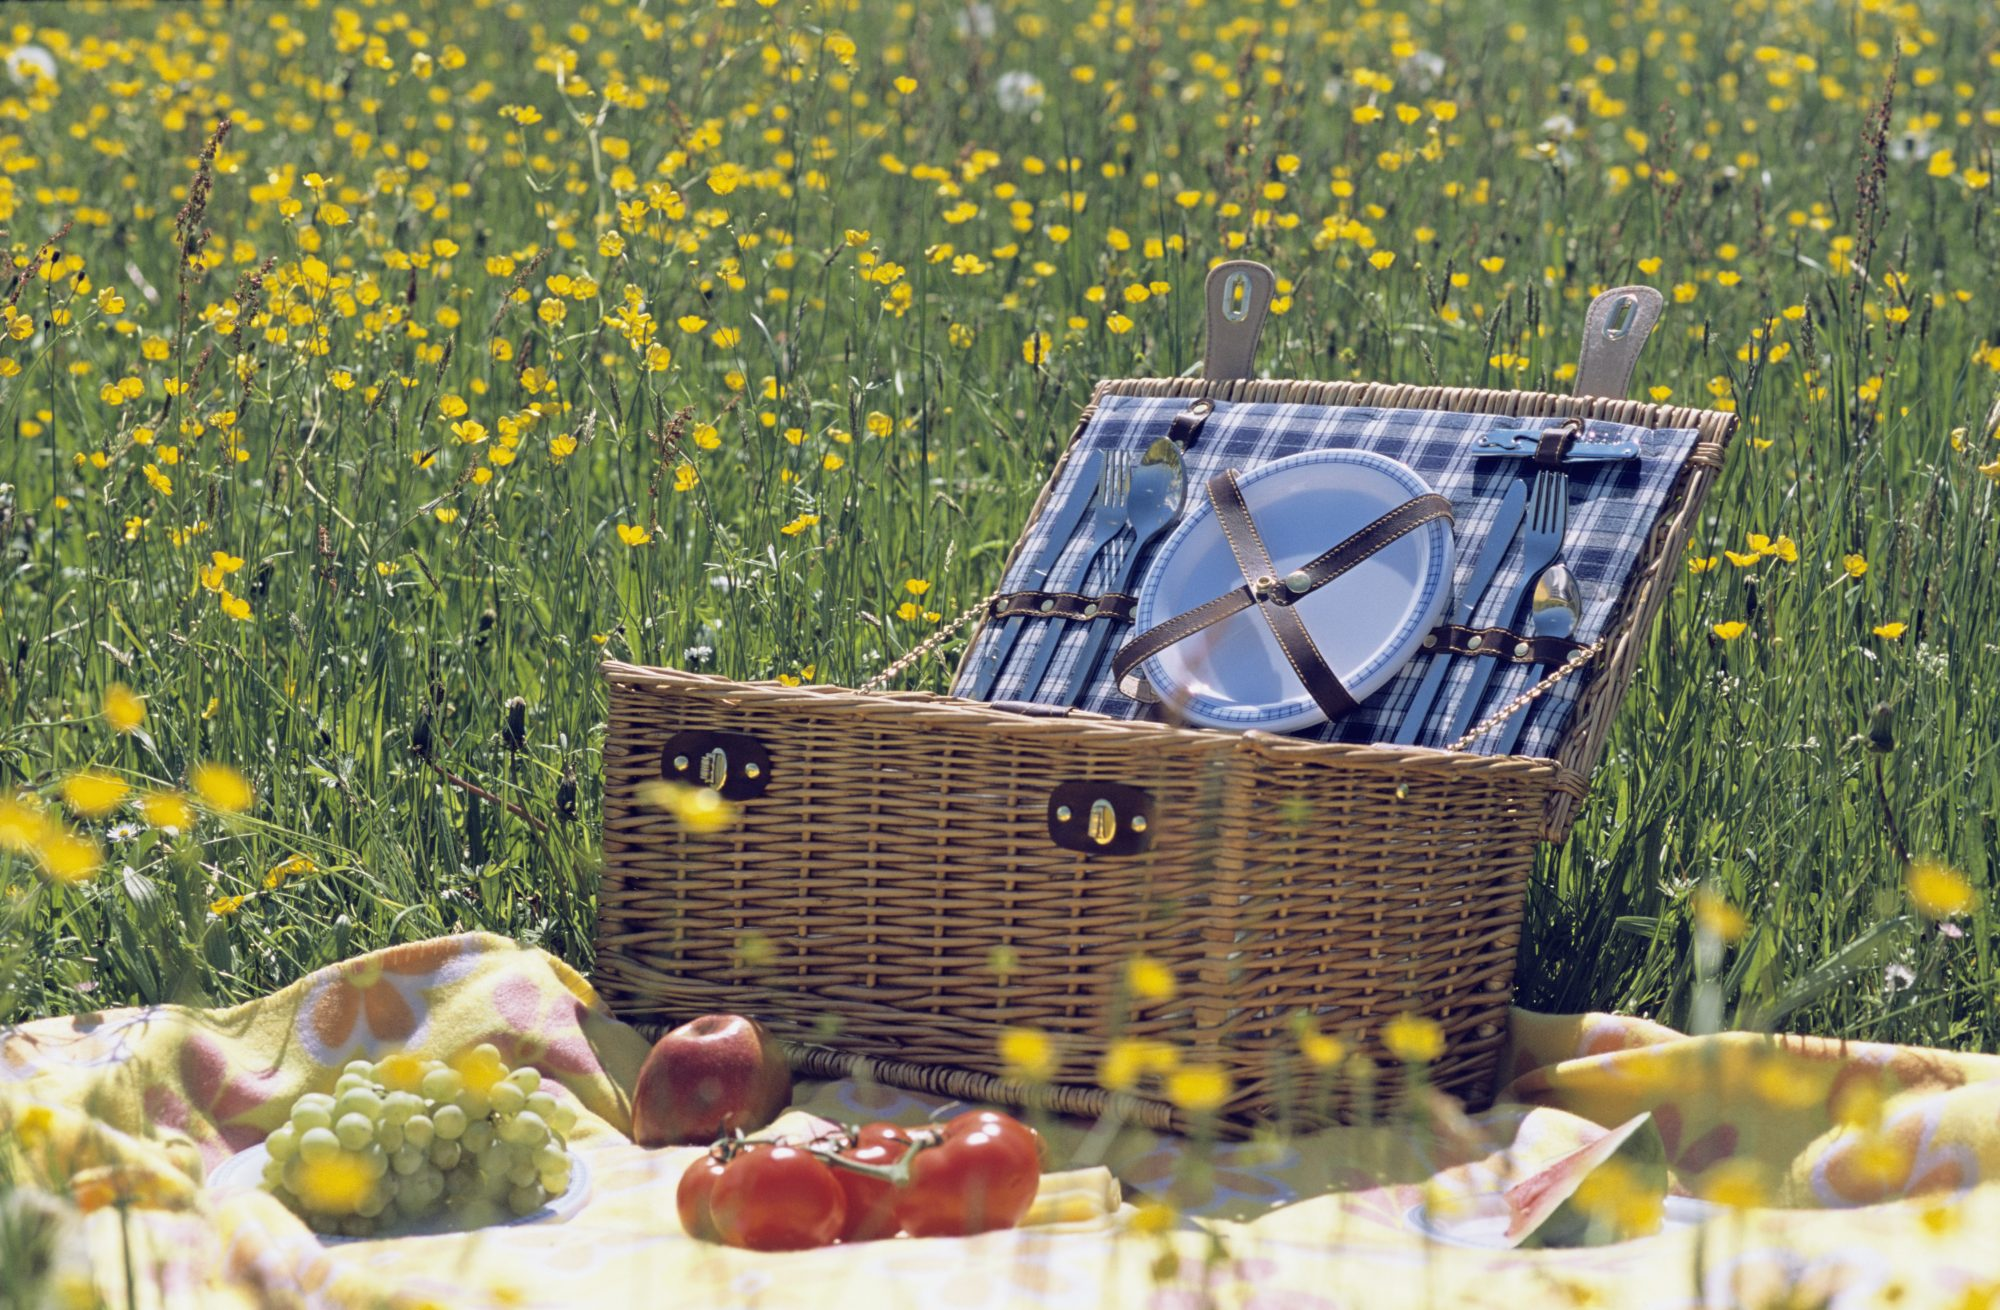 Picnic basket and fruit in meadow